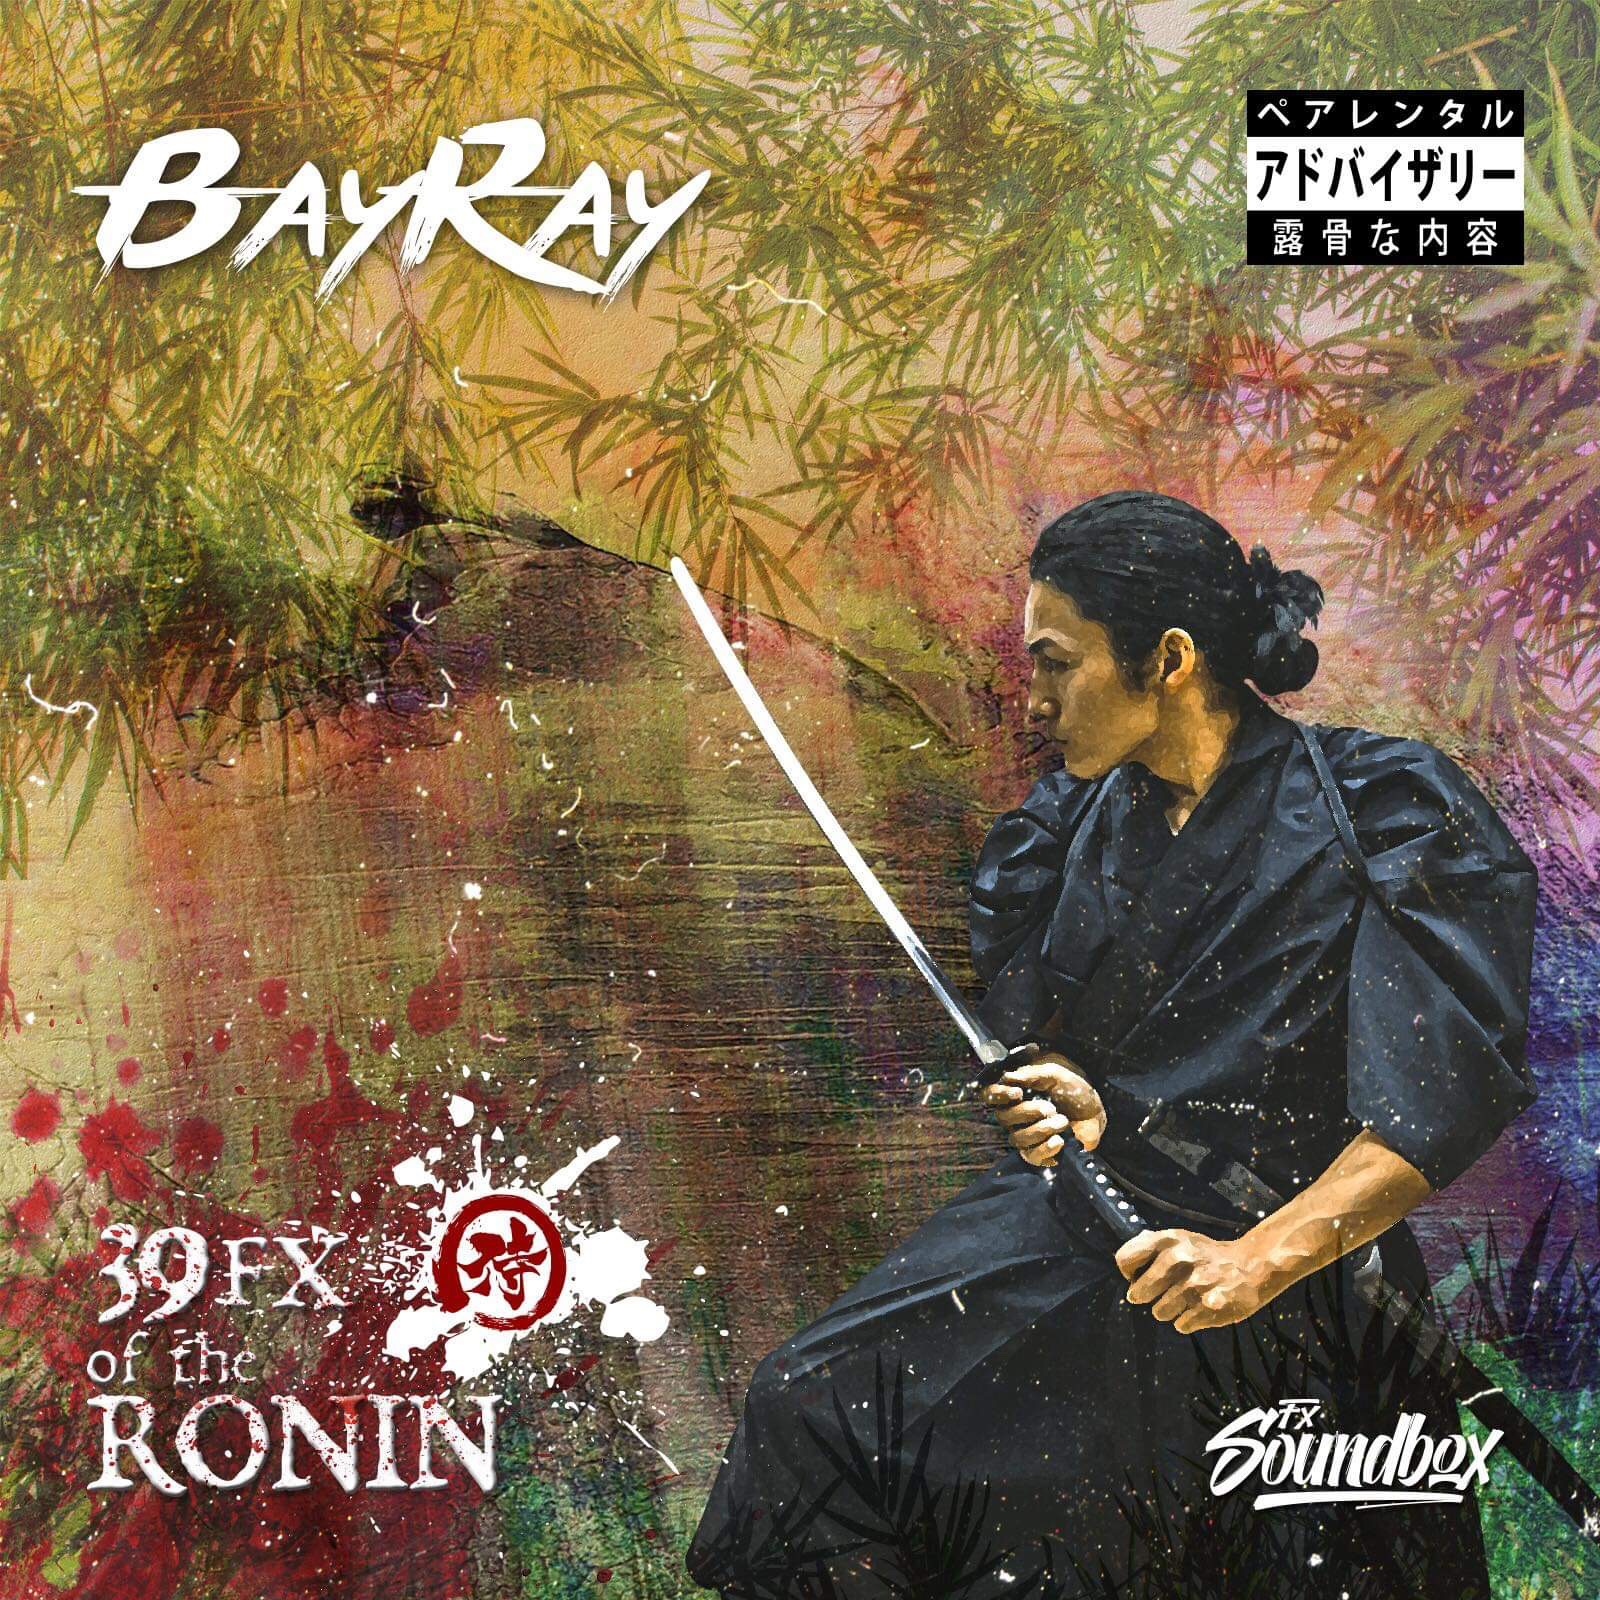 39 FX of the Ronin Cover